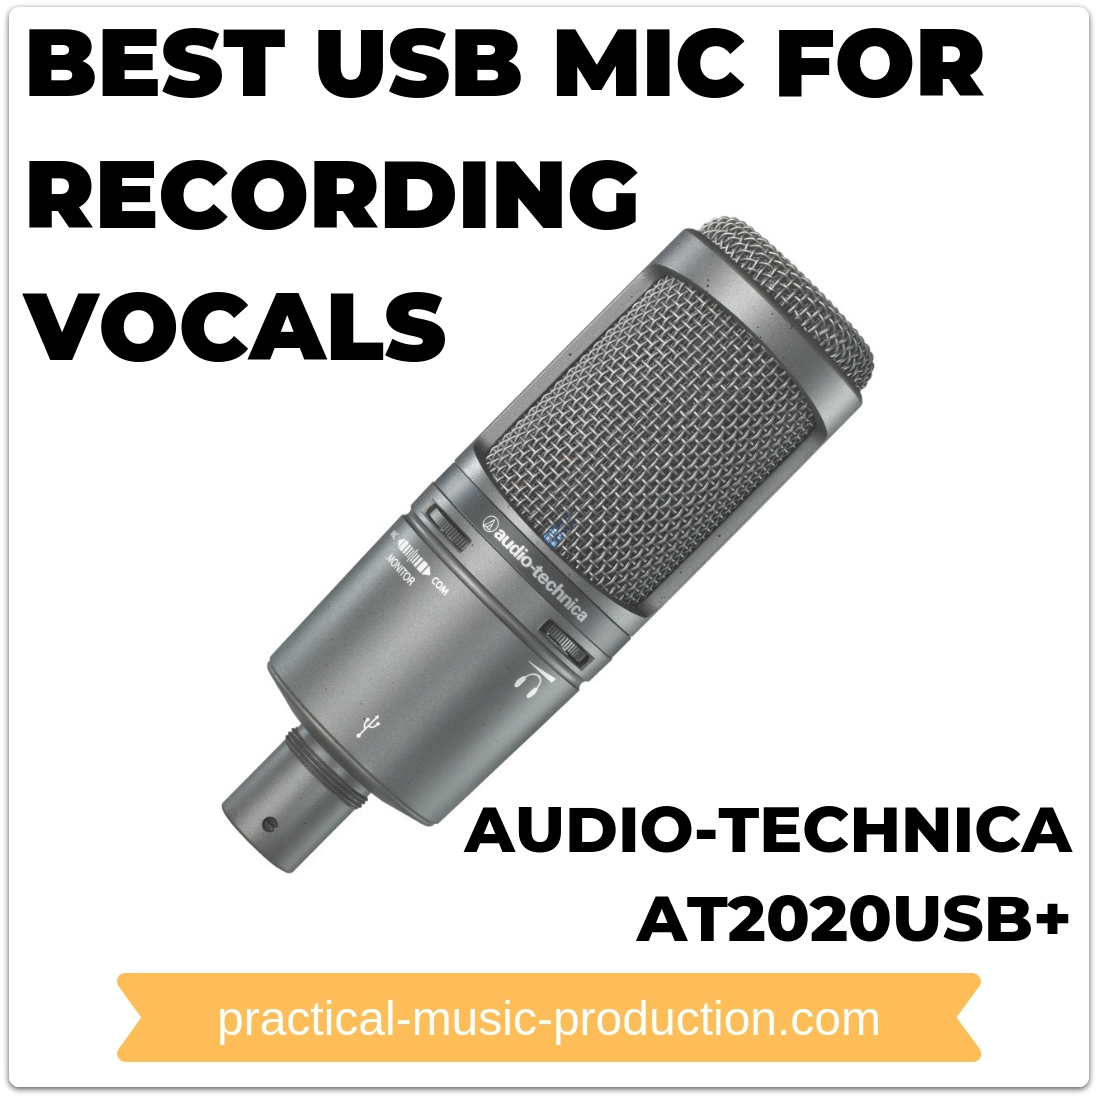 The best USB mic for recording vocals is the AT2020USB+ from Audio-Technica, a world-renowned company